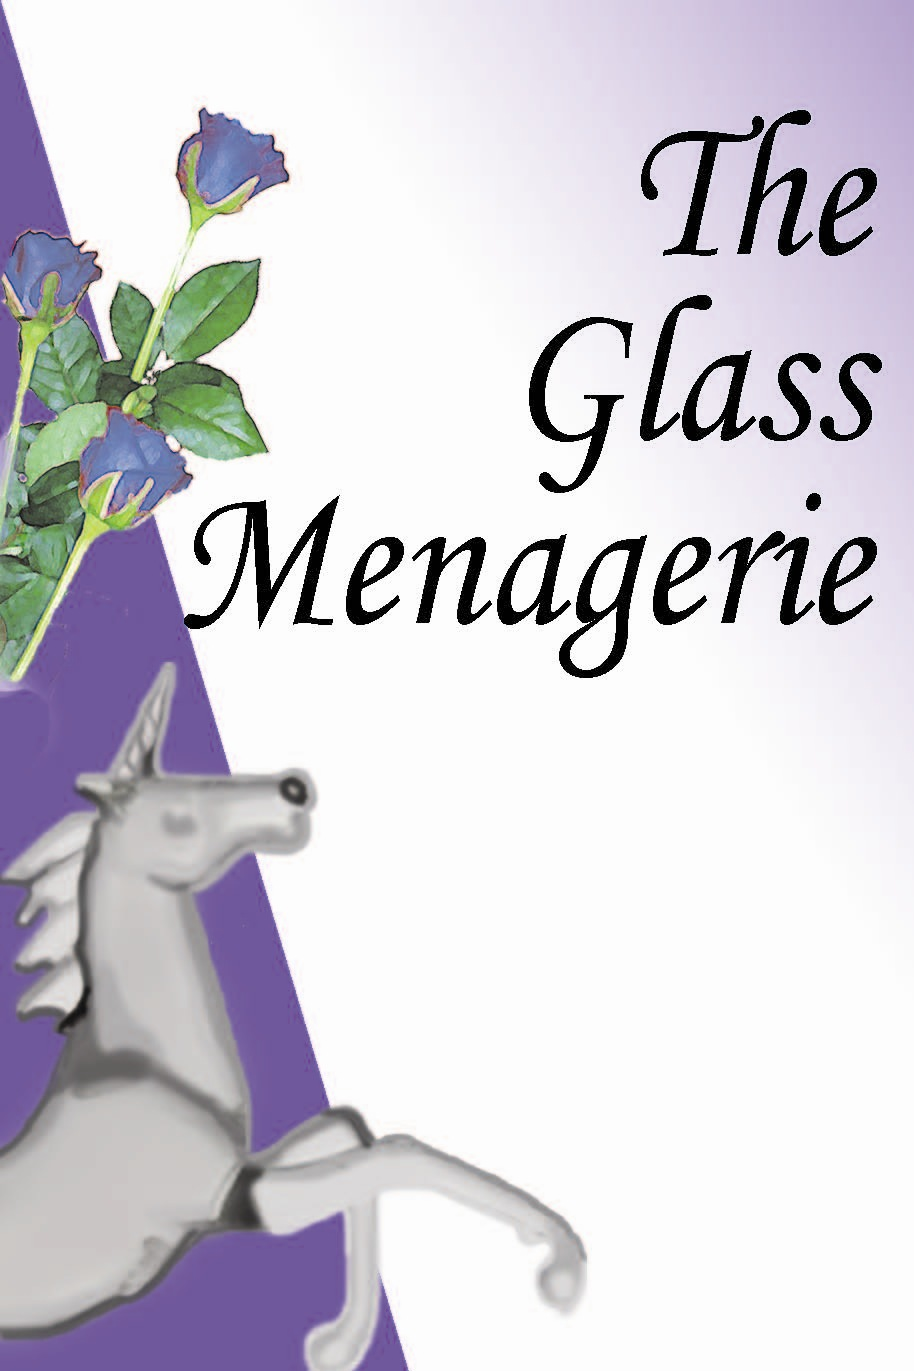 glass menagerie character analysis essay